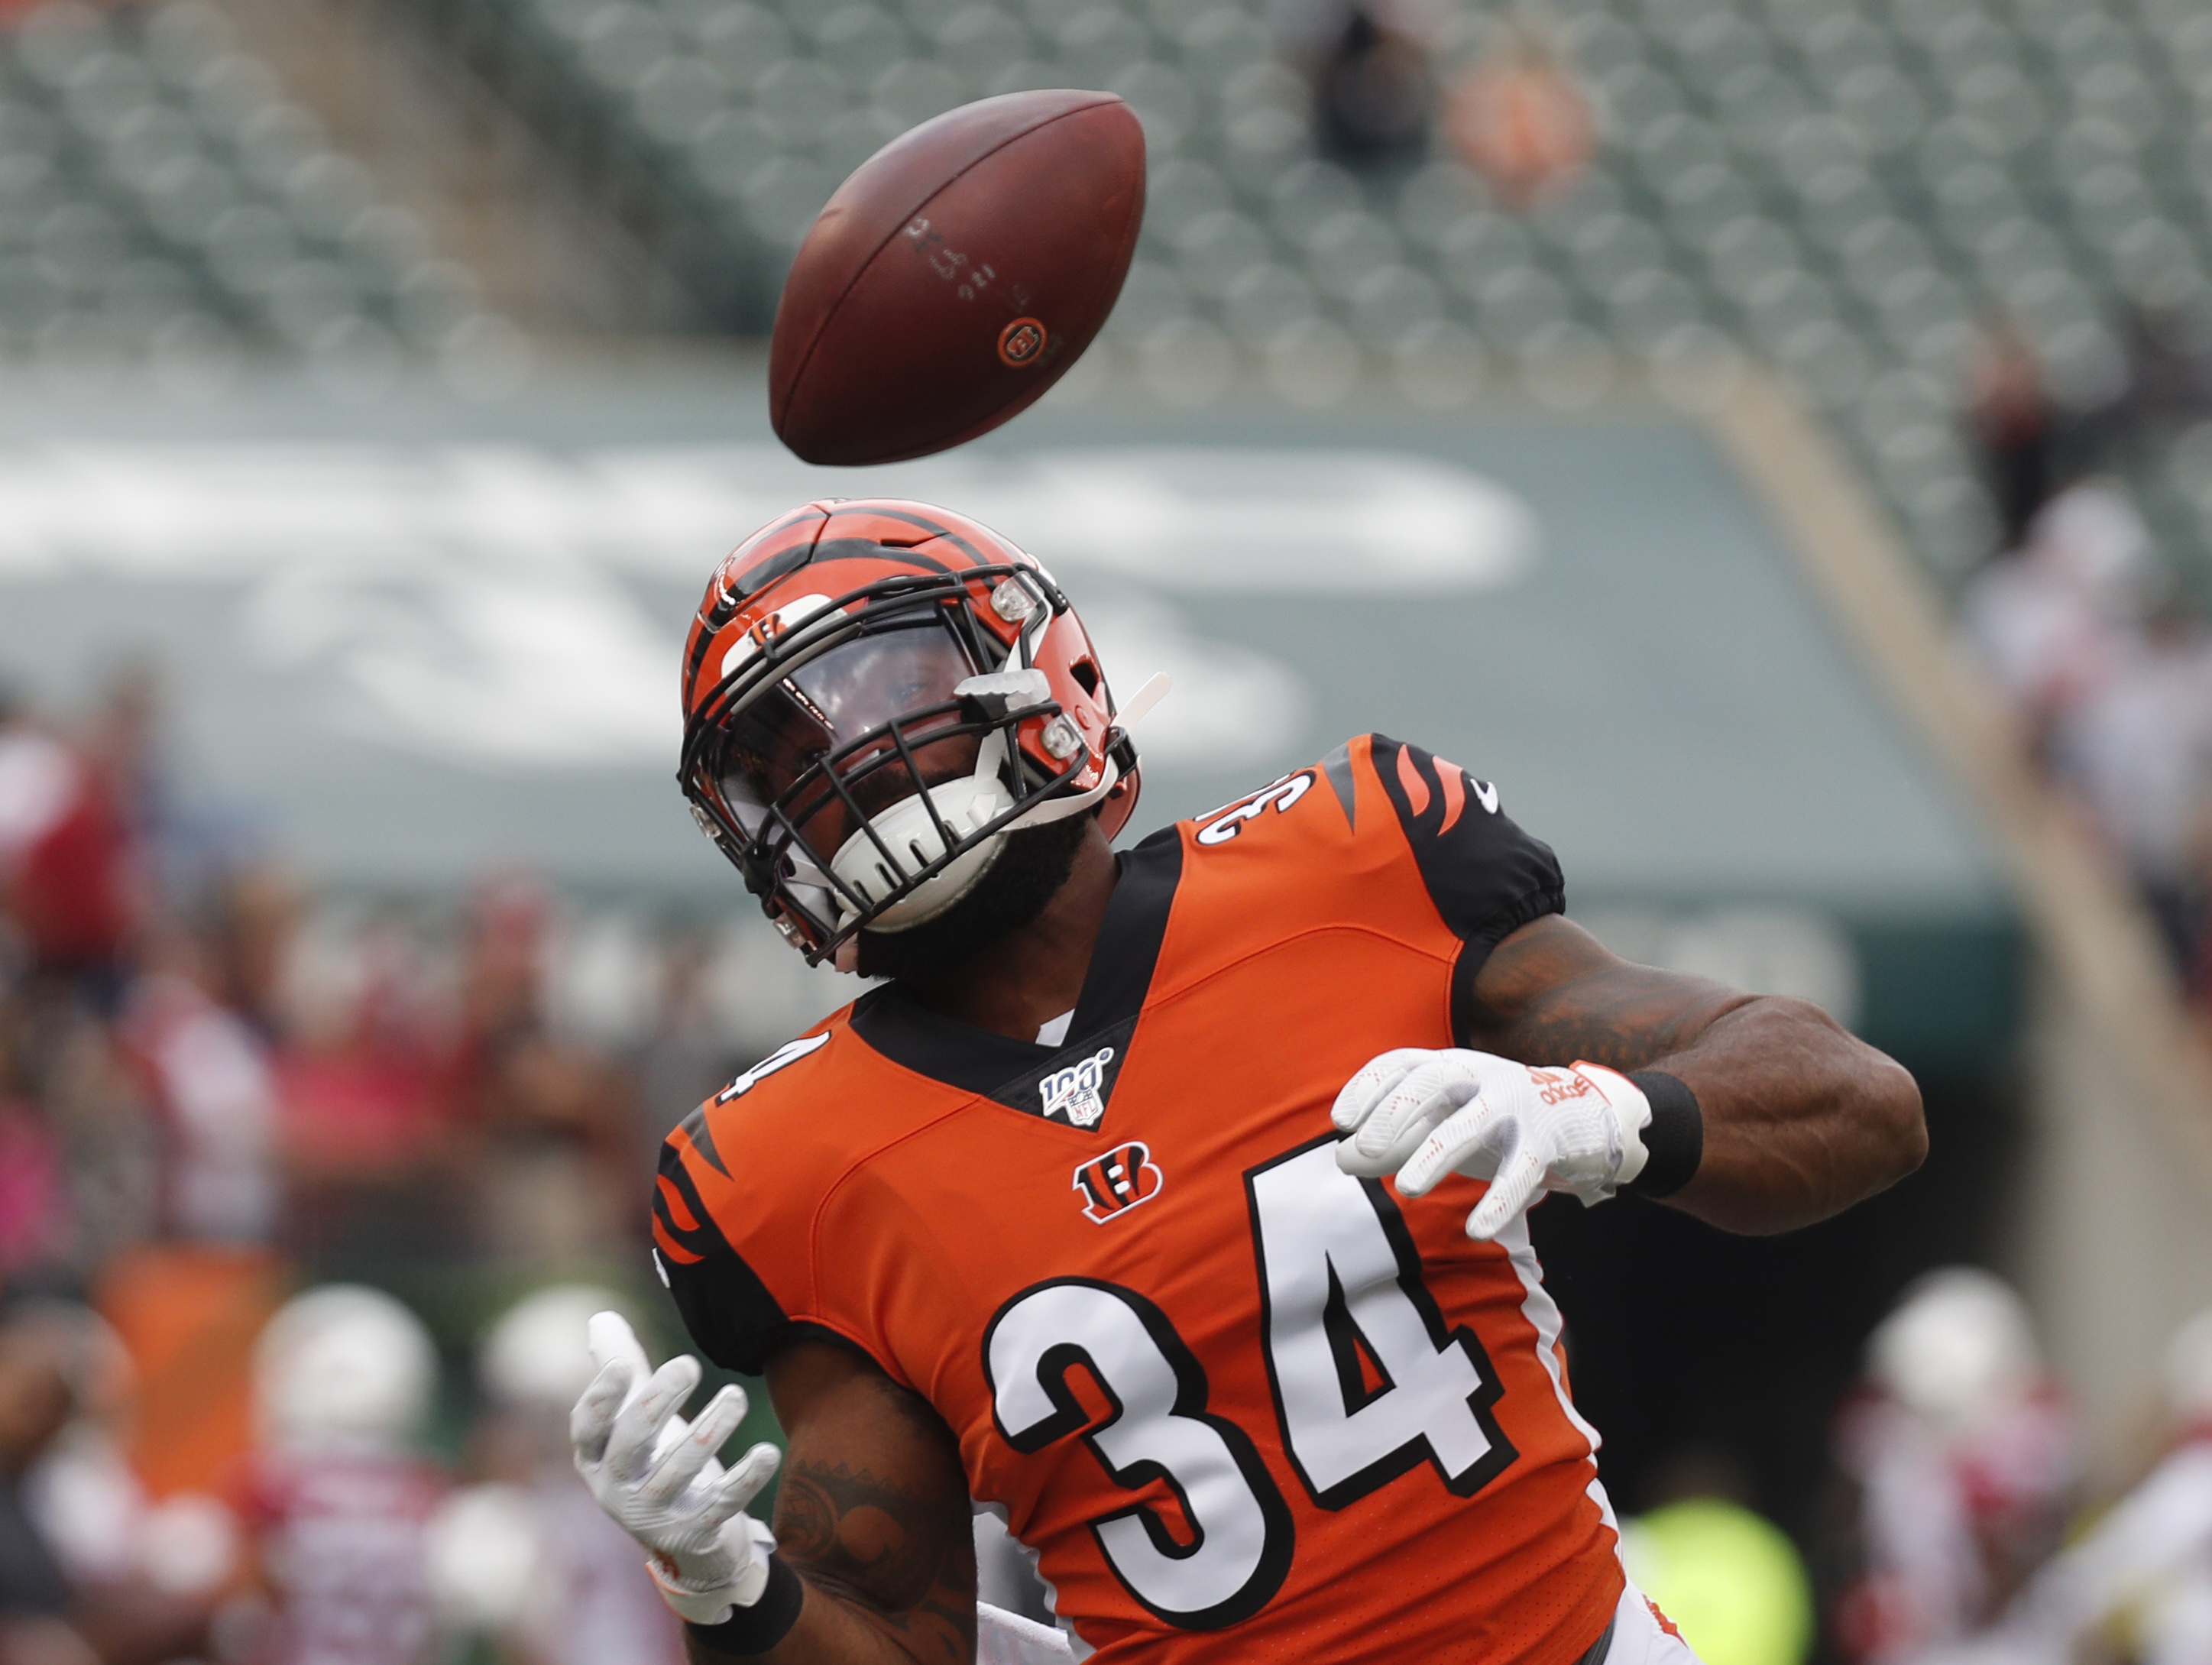 NFL: Arizona Cardinals at Cincinnati Bengals